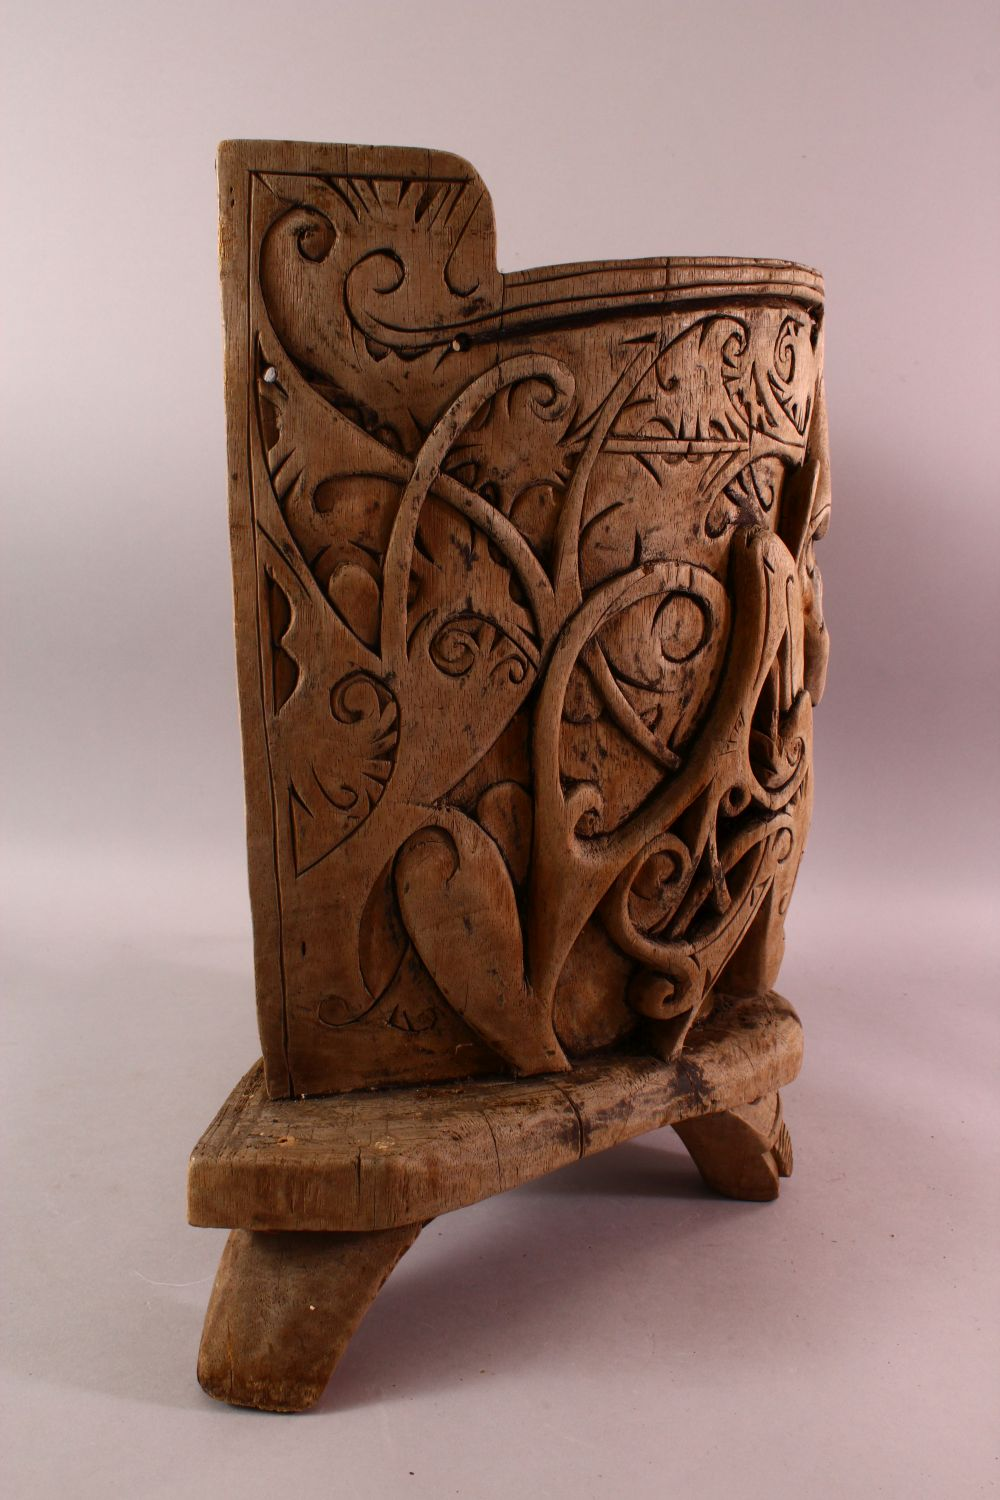 A 19TH / 20TH CENTURY INDIAN CARVED WOODEN BABY CARRIER, Carved with mythical beasts and foliage, - Image 4 of 5